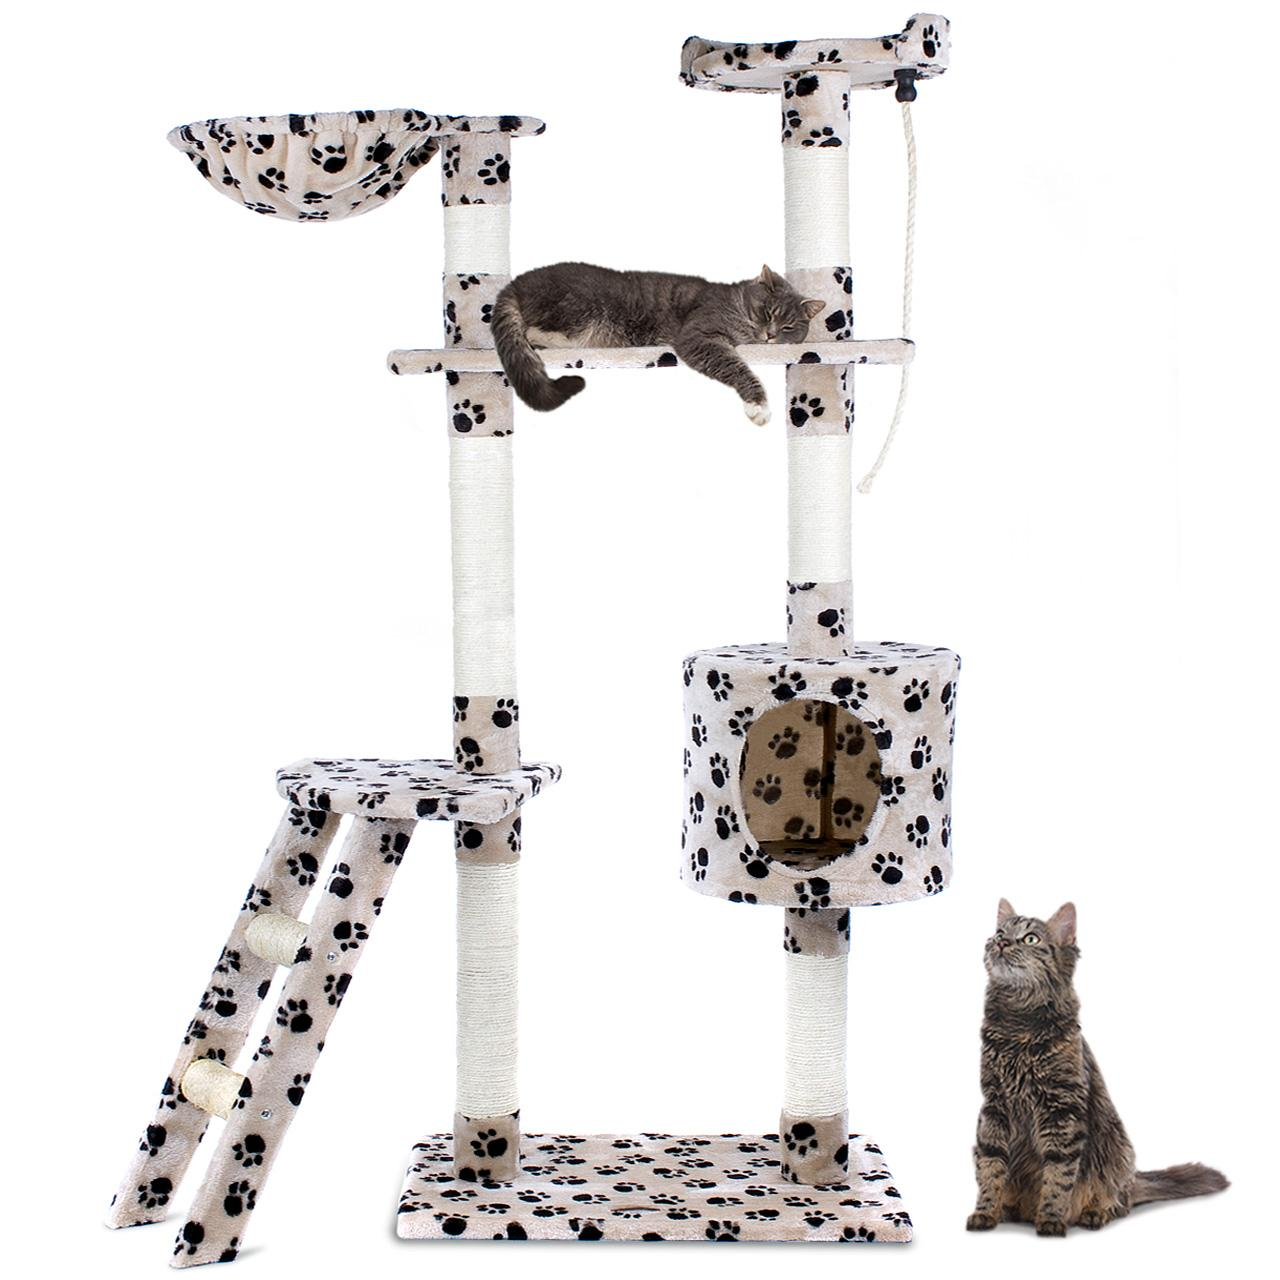 arbre chat griffoir grattoir 152cm diverses couleurs happypet cat016 2 neuf ebay. Black Bedroom Furniture Sets. Home Design Ideas